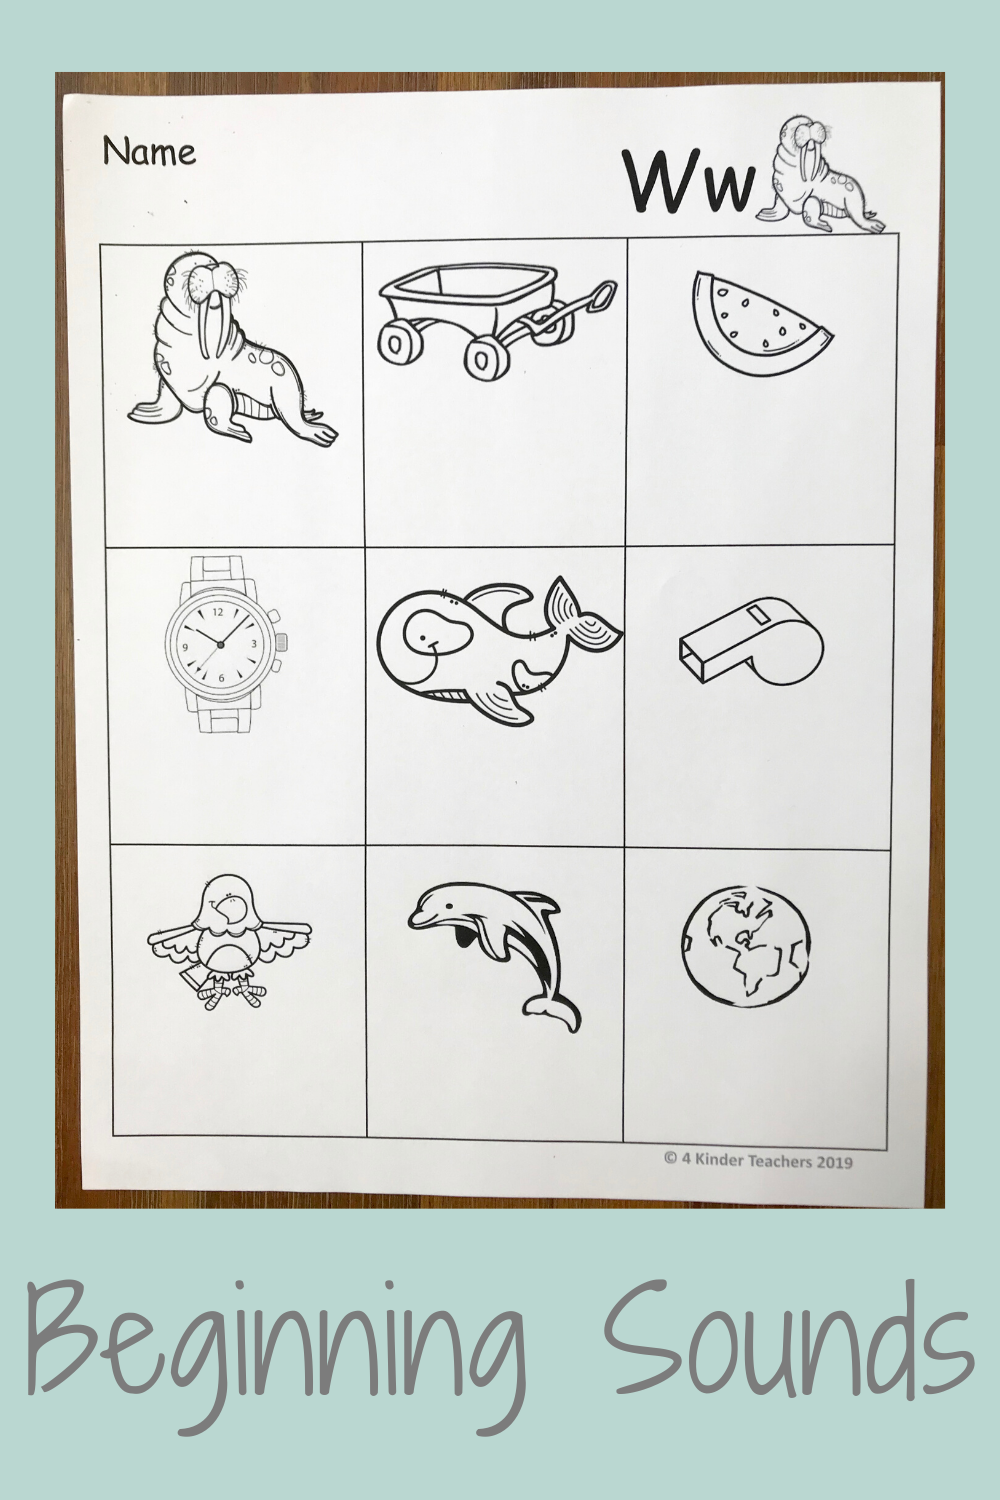 How to Use Fun Worksheets on Beginning Sounds